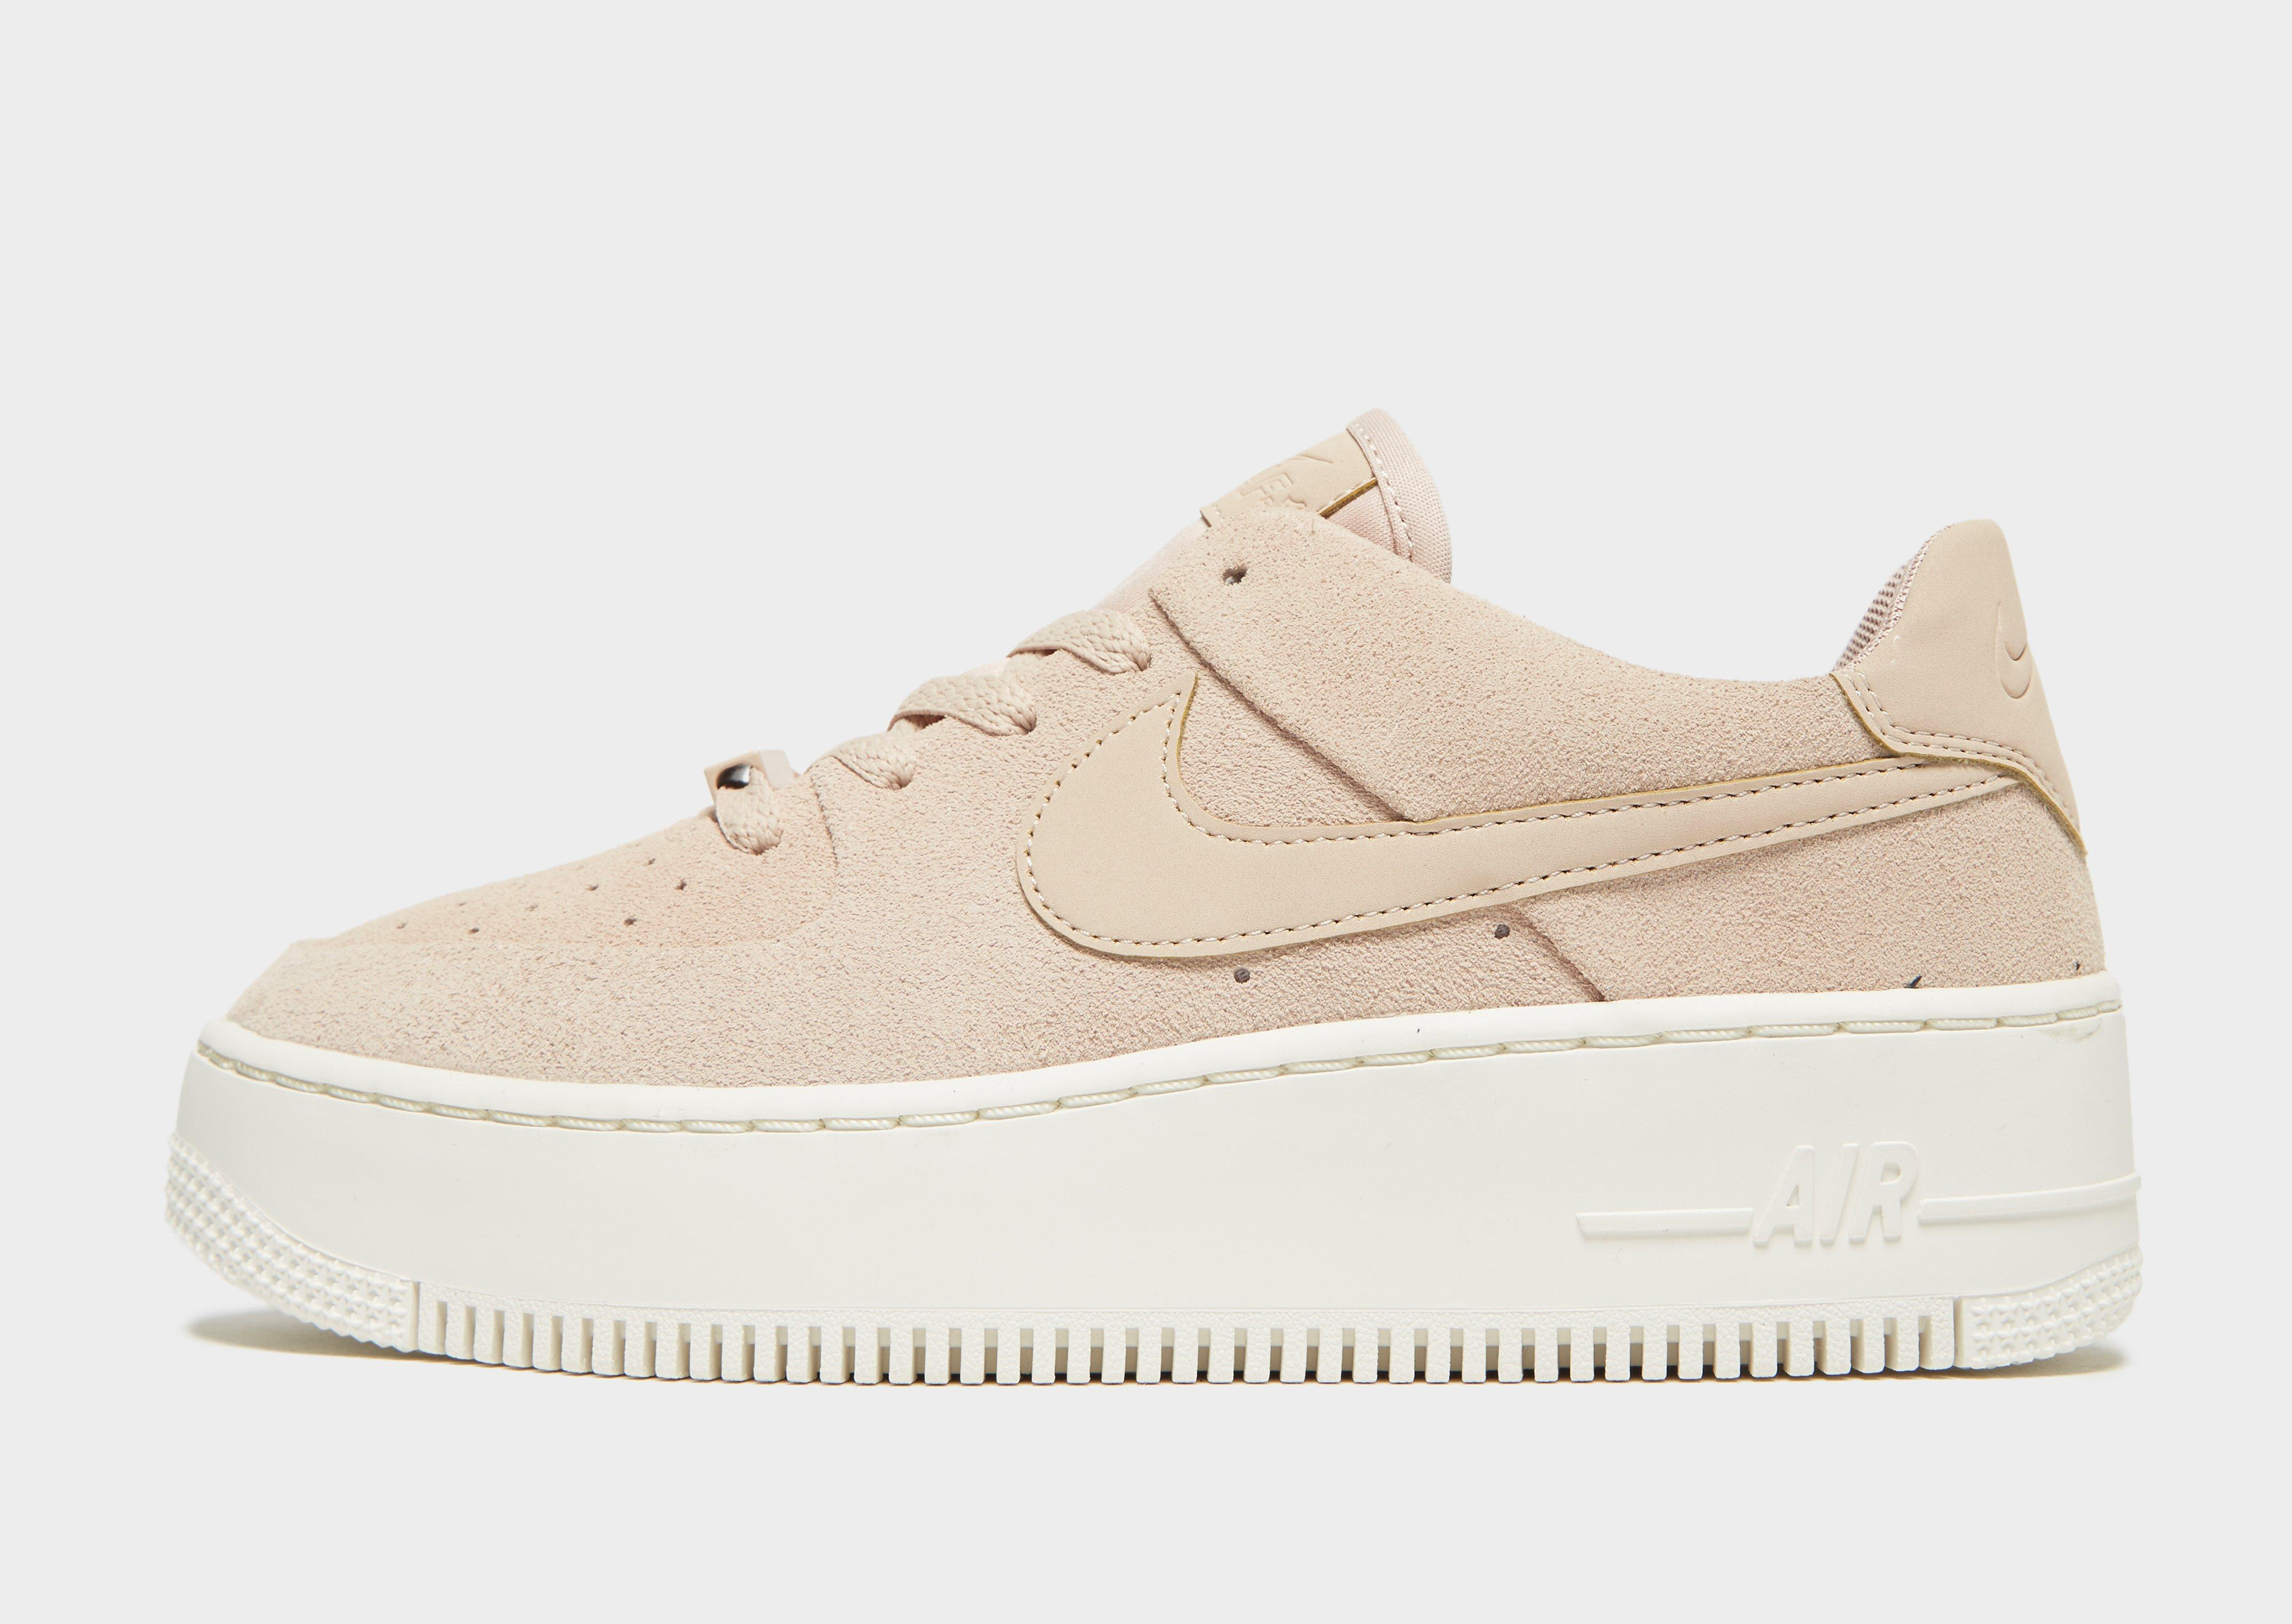 Lyst - Nike Air Force 1 Sage Low in Natural 8bf01f9ed8